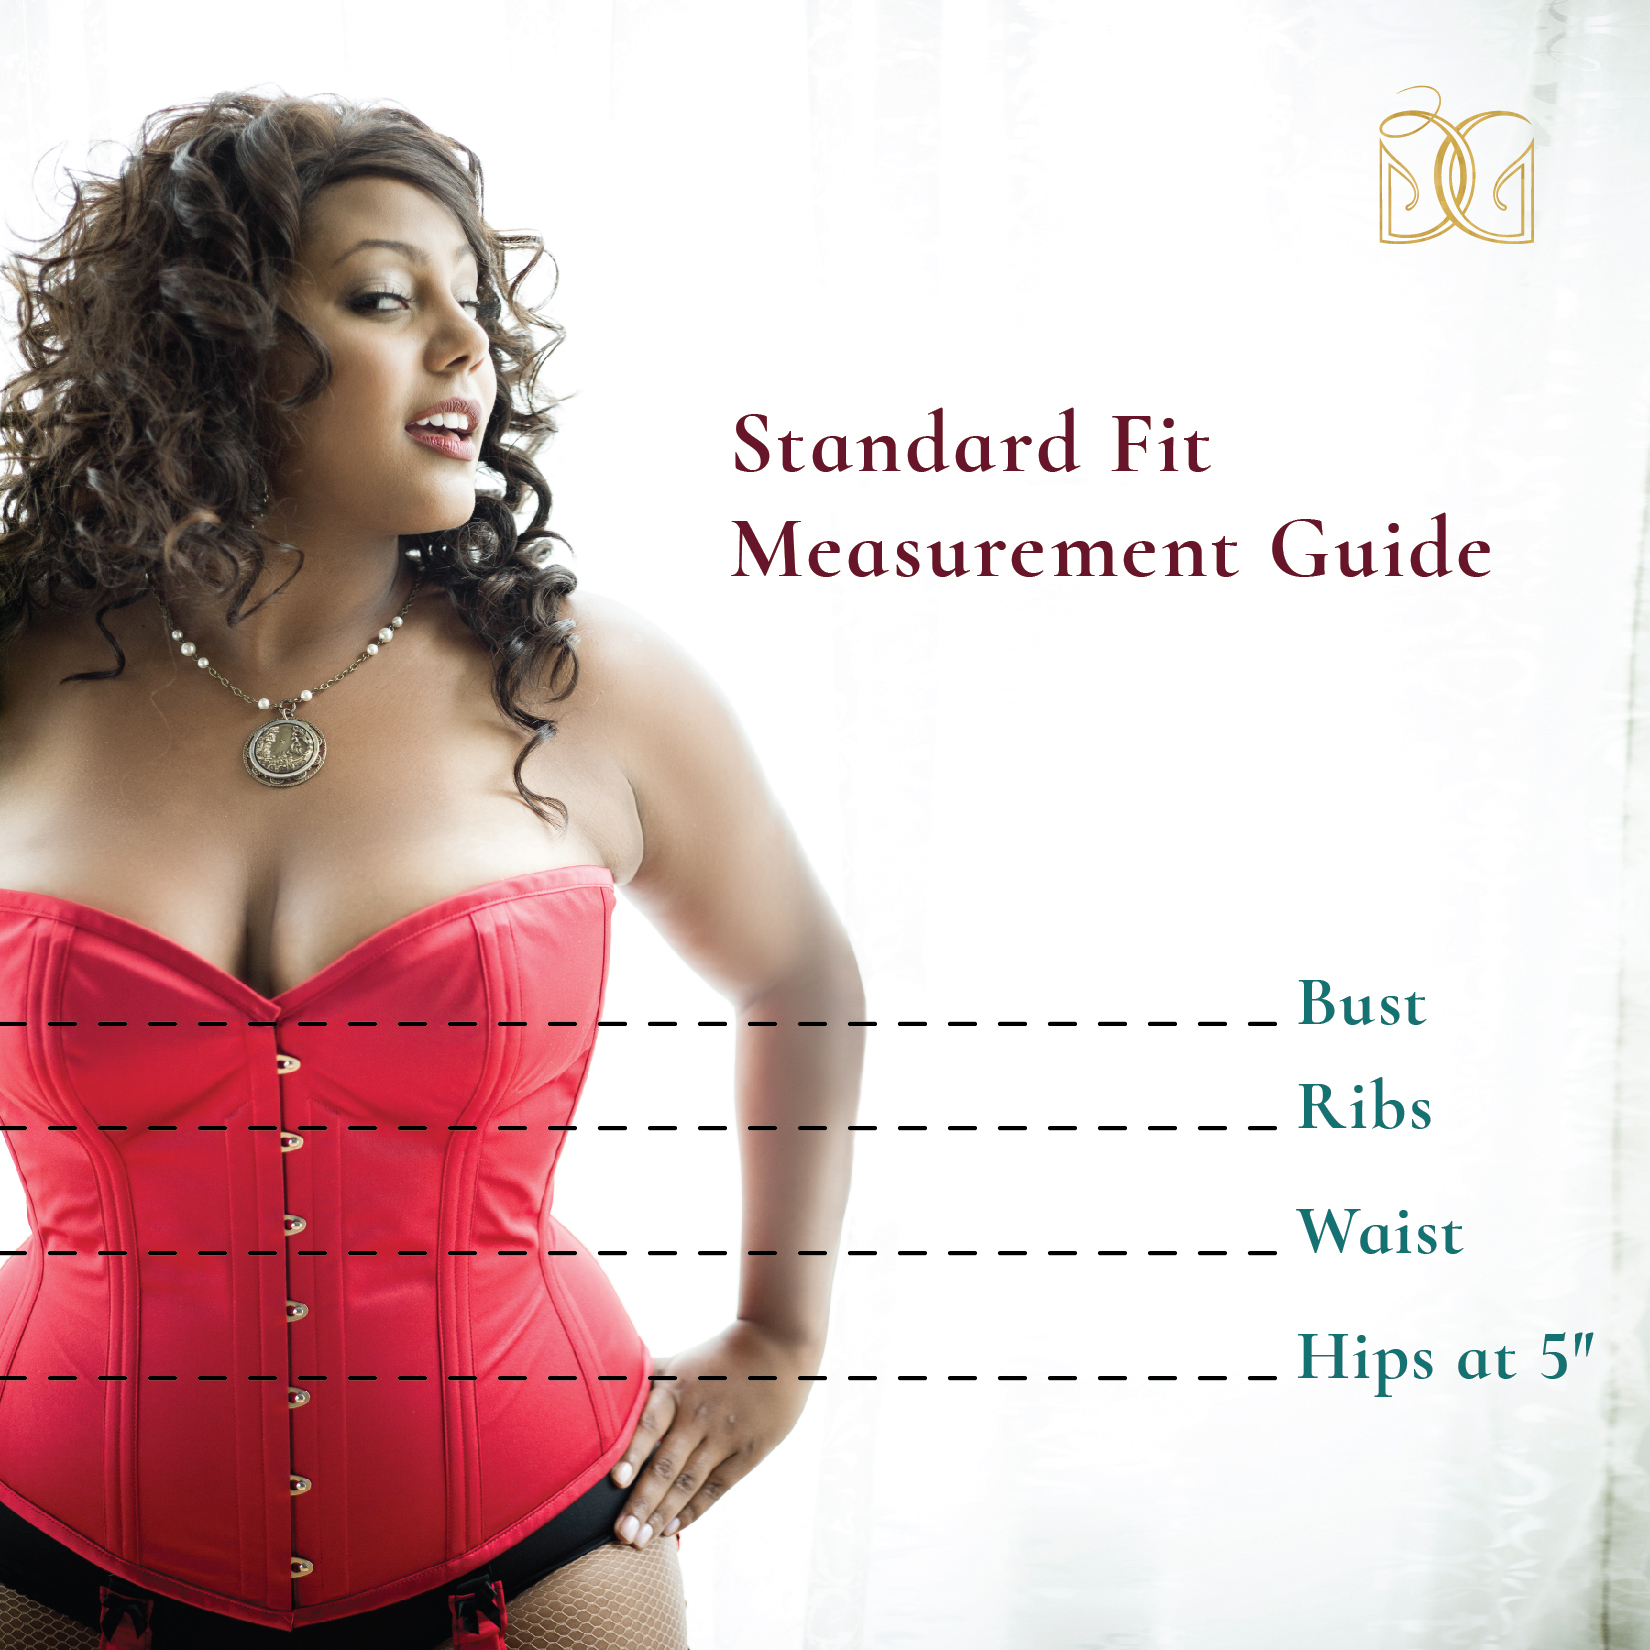 """- Our standard fit corsets are designed for a 2-4"""" waist reduction and a gap of about 2"""" in the back lacing. Please order 2-6"""" smaller than your natural waist. If you are between sizes, round down.The chart below is based on our core styles: the Cincher and the Sweetheart. If you find your measurements more curvaceous than those below, try our Cupid and Valentine styles! If the below measurements are too curvaceous, consider a slimmer silhouette such as the Tailored Cincher or Alexandra.Need sizing advice? Interested in a personalized fit? No problem! Email boutique@darkgarden.com for assistance. For extraordinary proportions and service, consider a fully bespoke fit corset."""